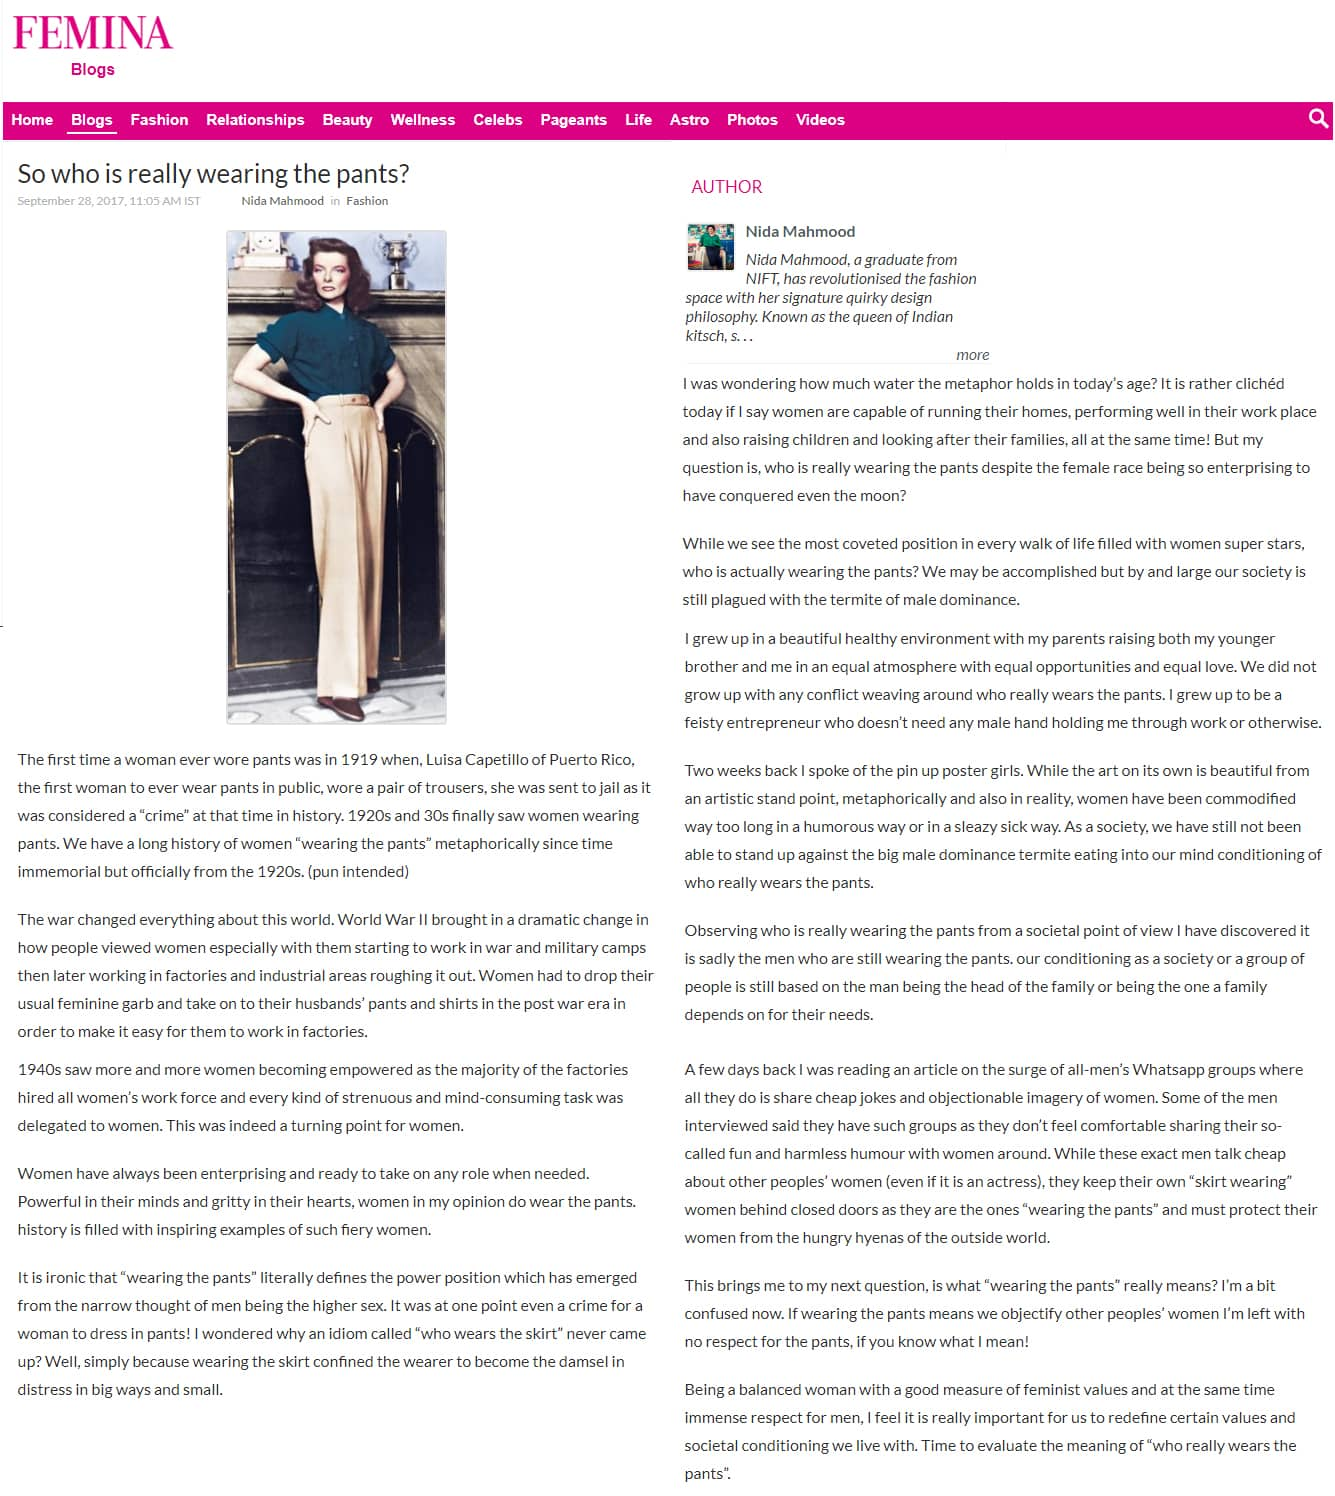 indian-fashion-designer-nida-mahmood-featured-femina-blog